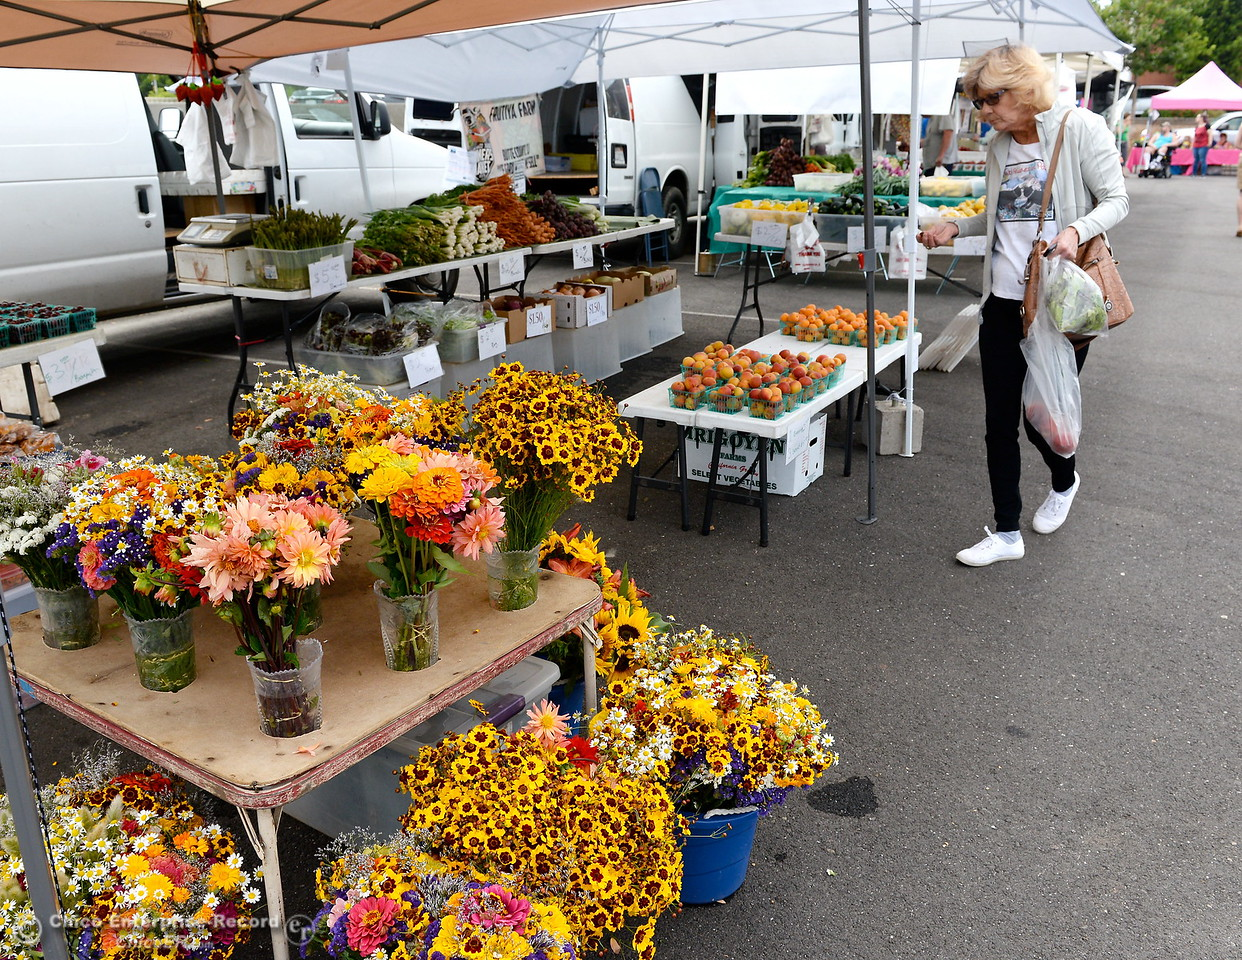 Flowers, fruits and vegetables are some of the items for sale at the Farmers Market in Oroville, Calif. Wed. June 7, 2017. (Bill Husa -- Enterprise-Record)